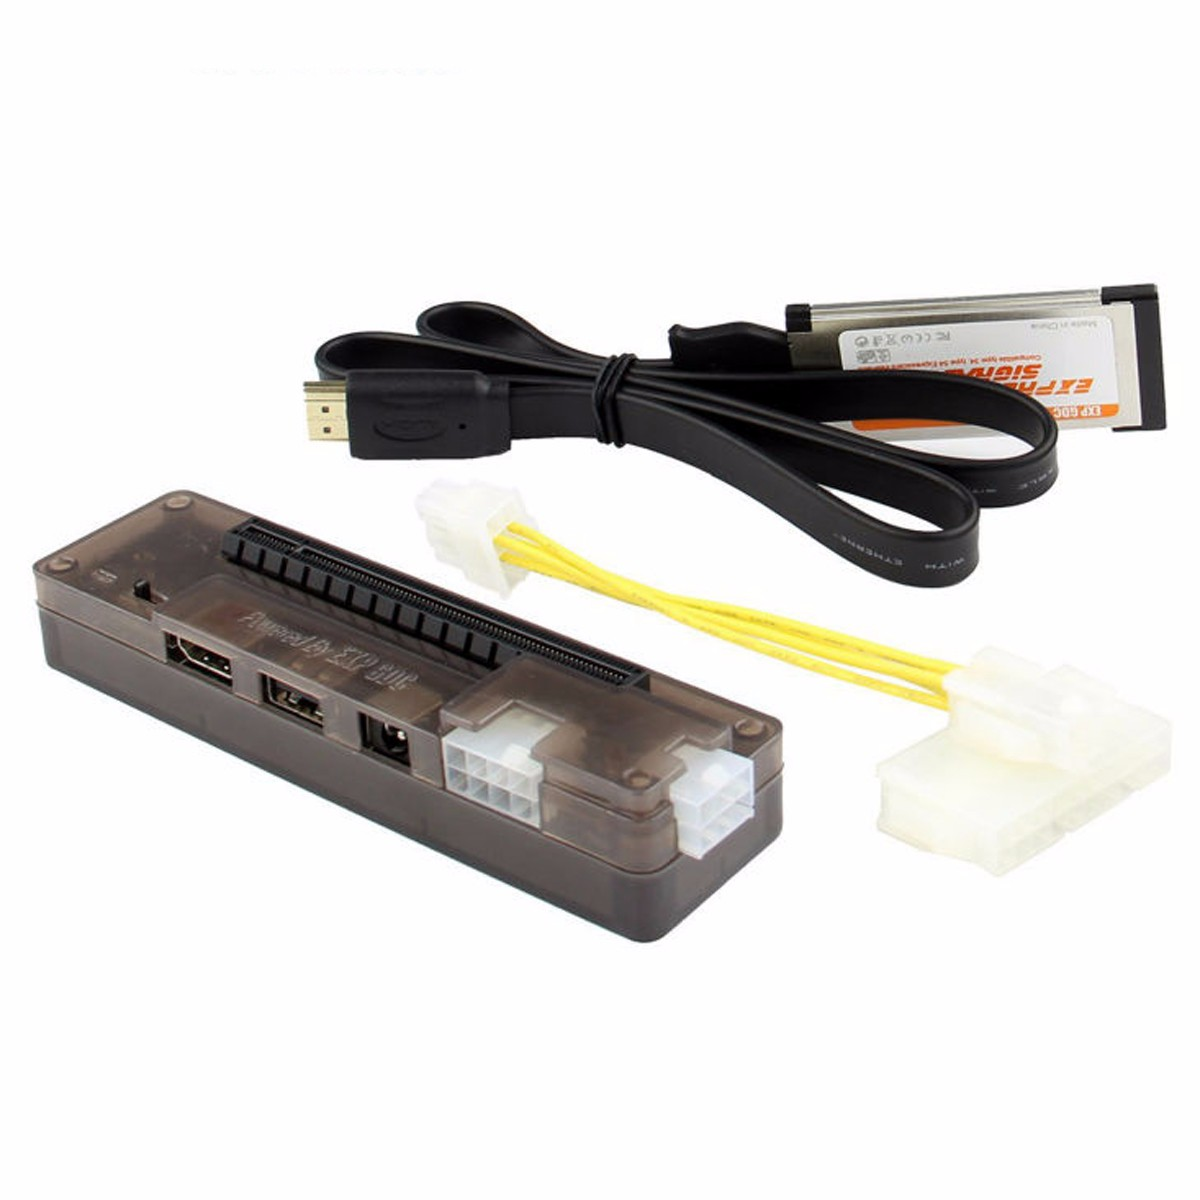 New Arrival PCIe PCI-E PCI Express Card Laptop External Independent Video Card Dock Mini PCI-E Version For V8.0 EXP GDC